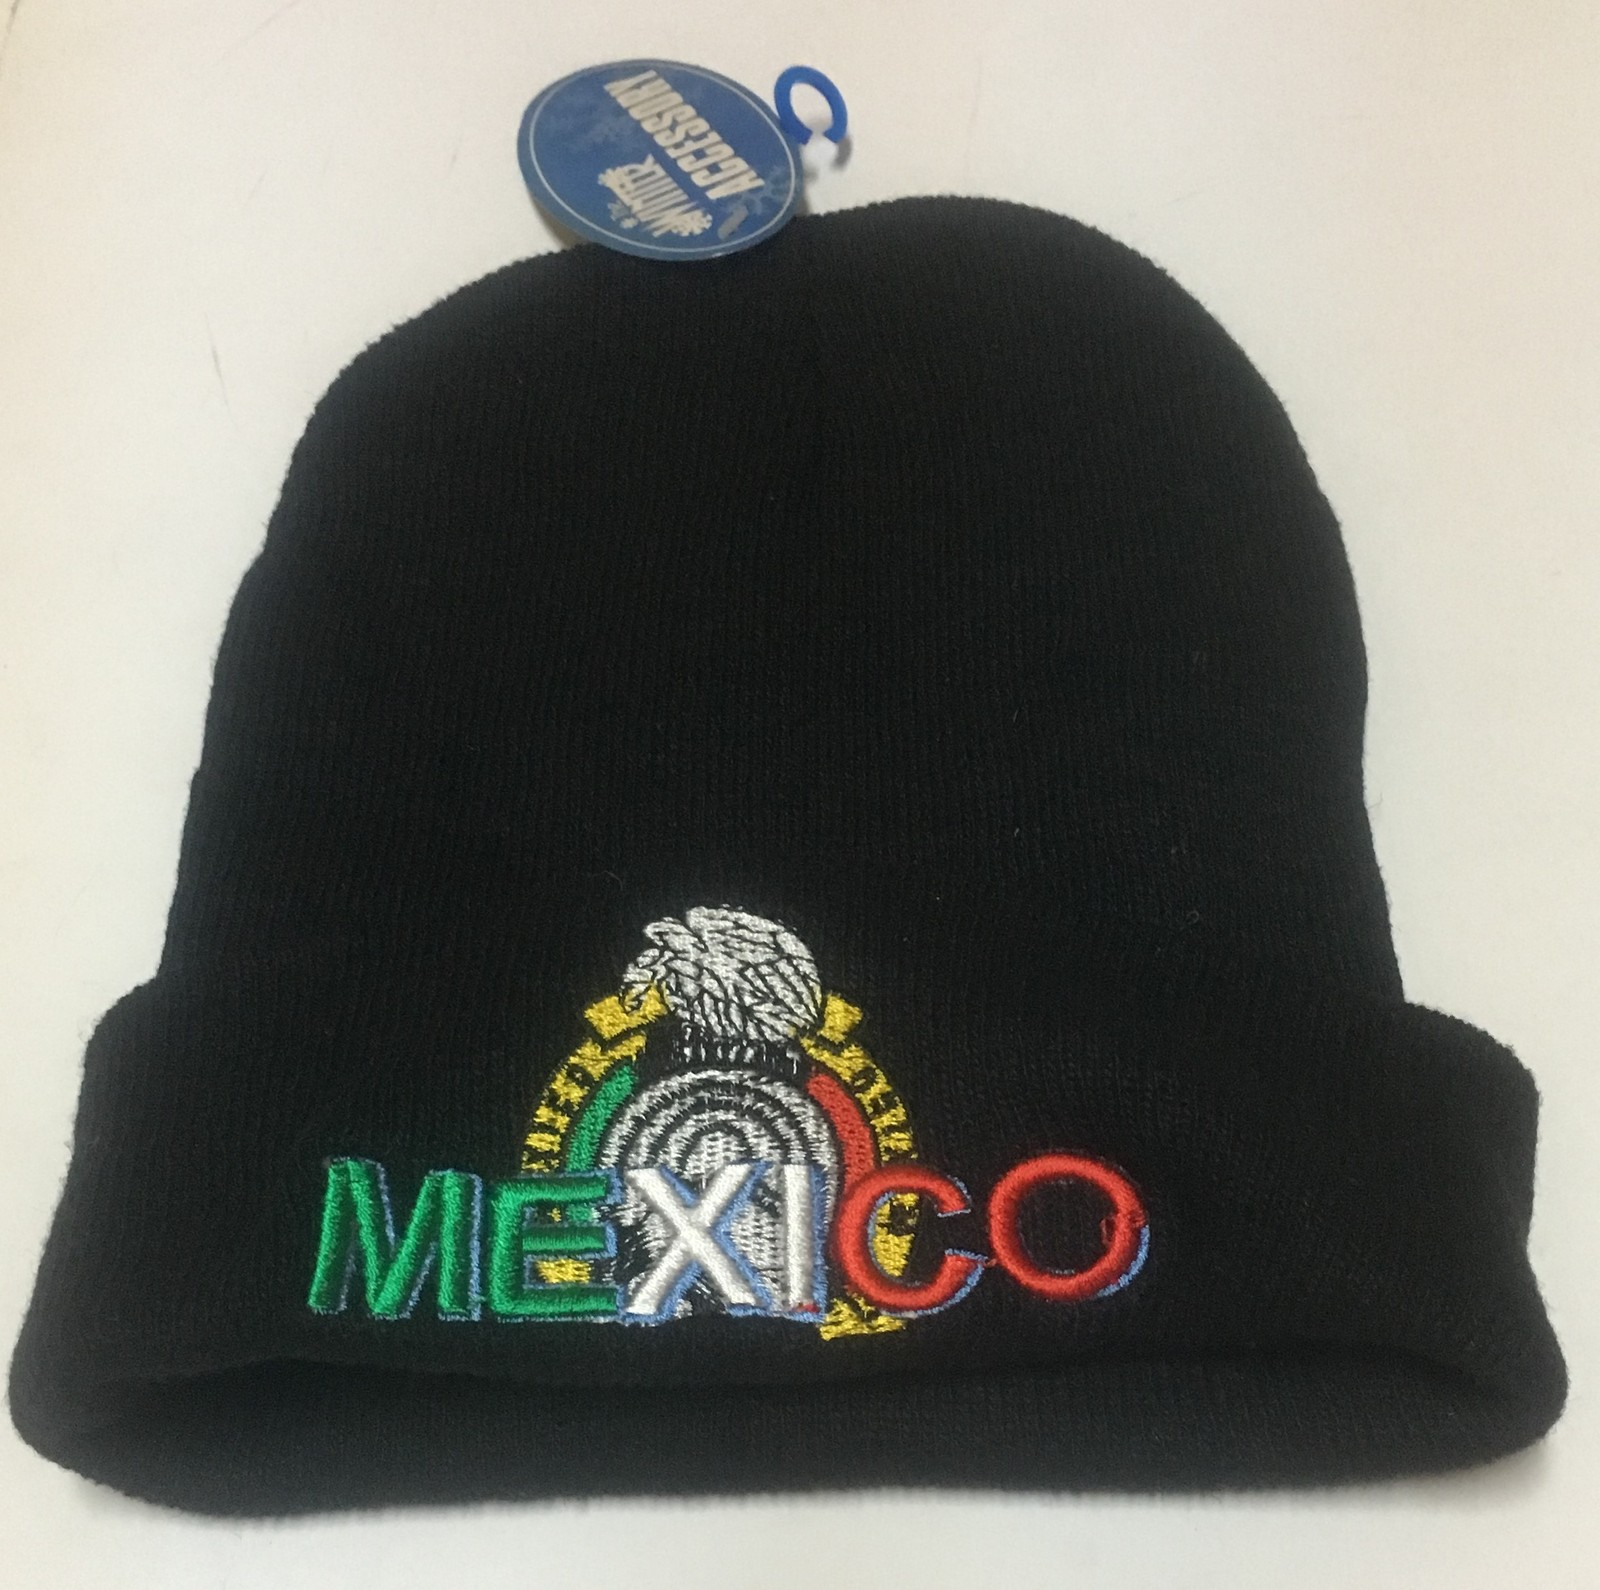 MEXICO Beanie Hat Cap Adult One Size